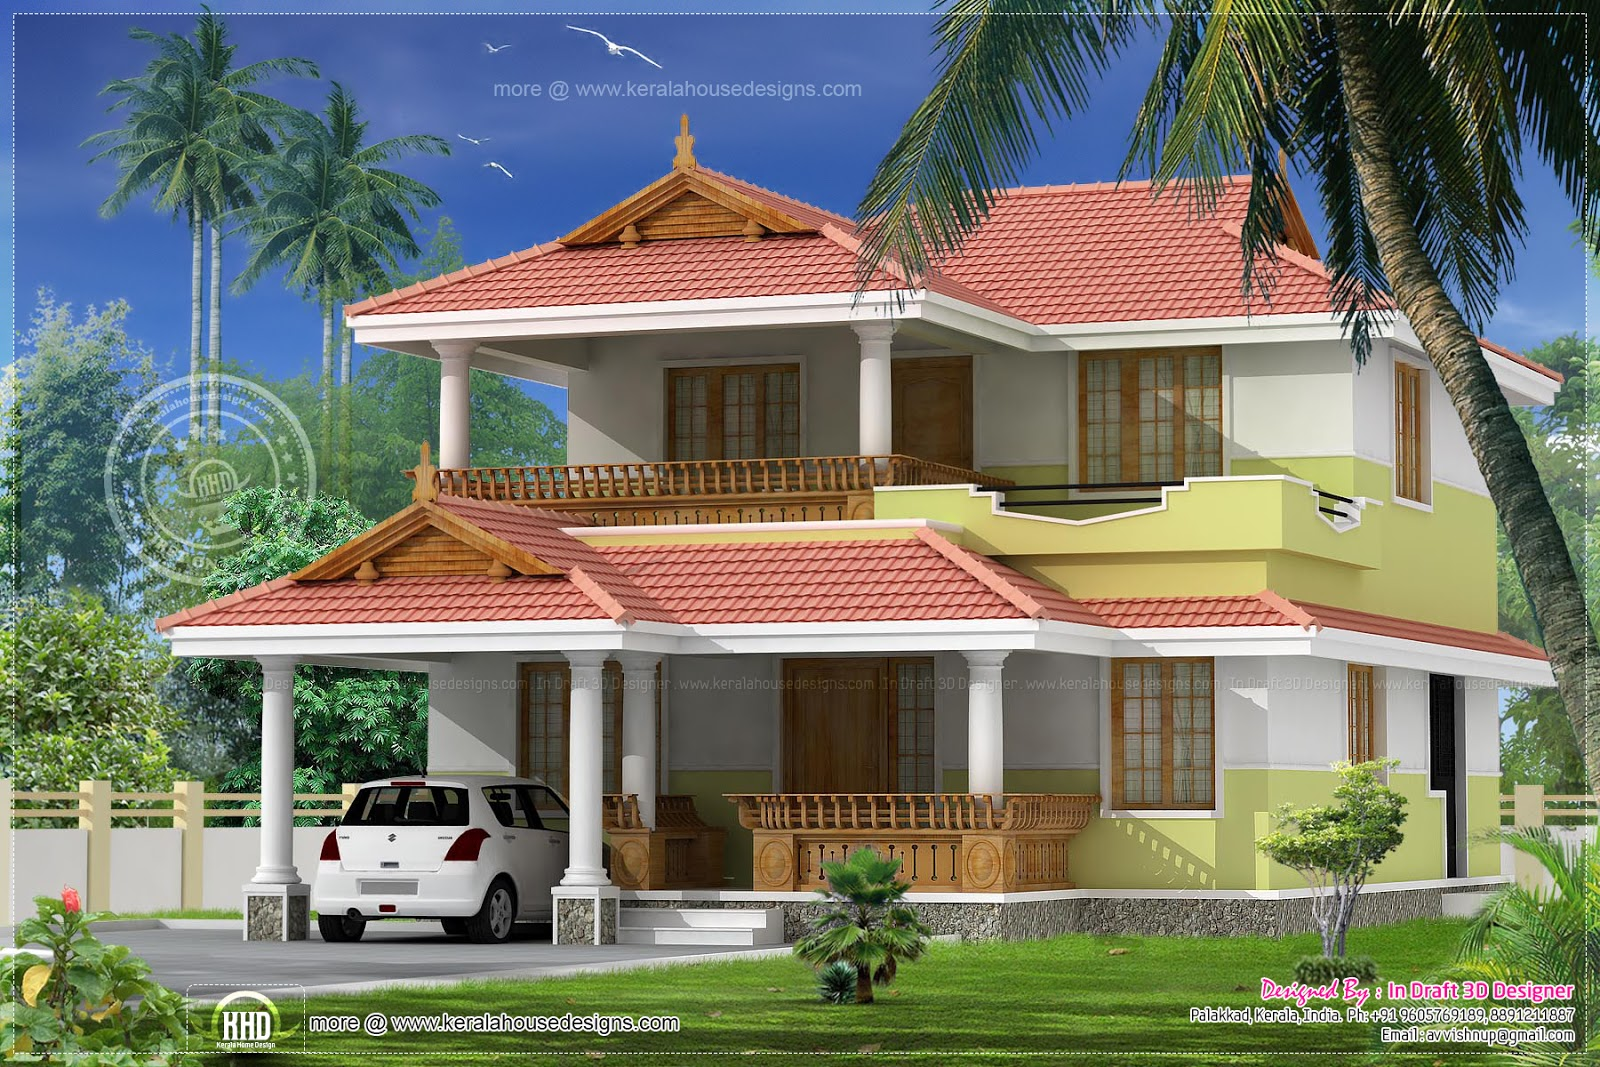 3 bed room traditional villa 1740 kerala home for Home designs traditional